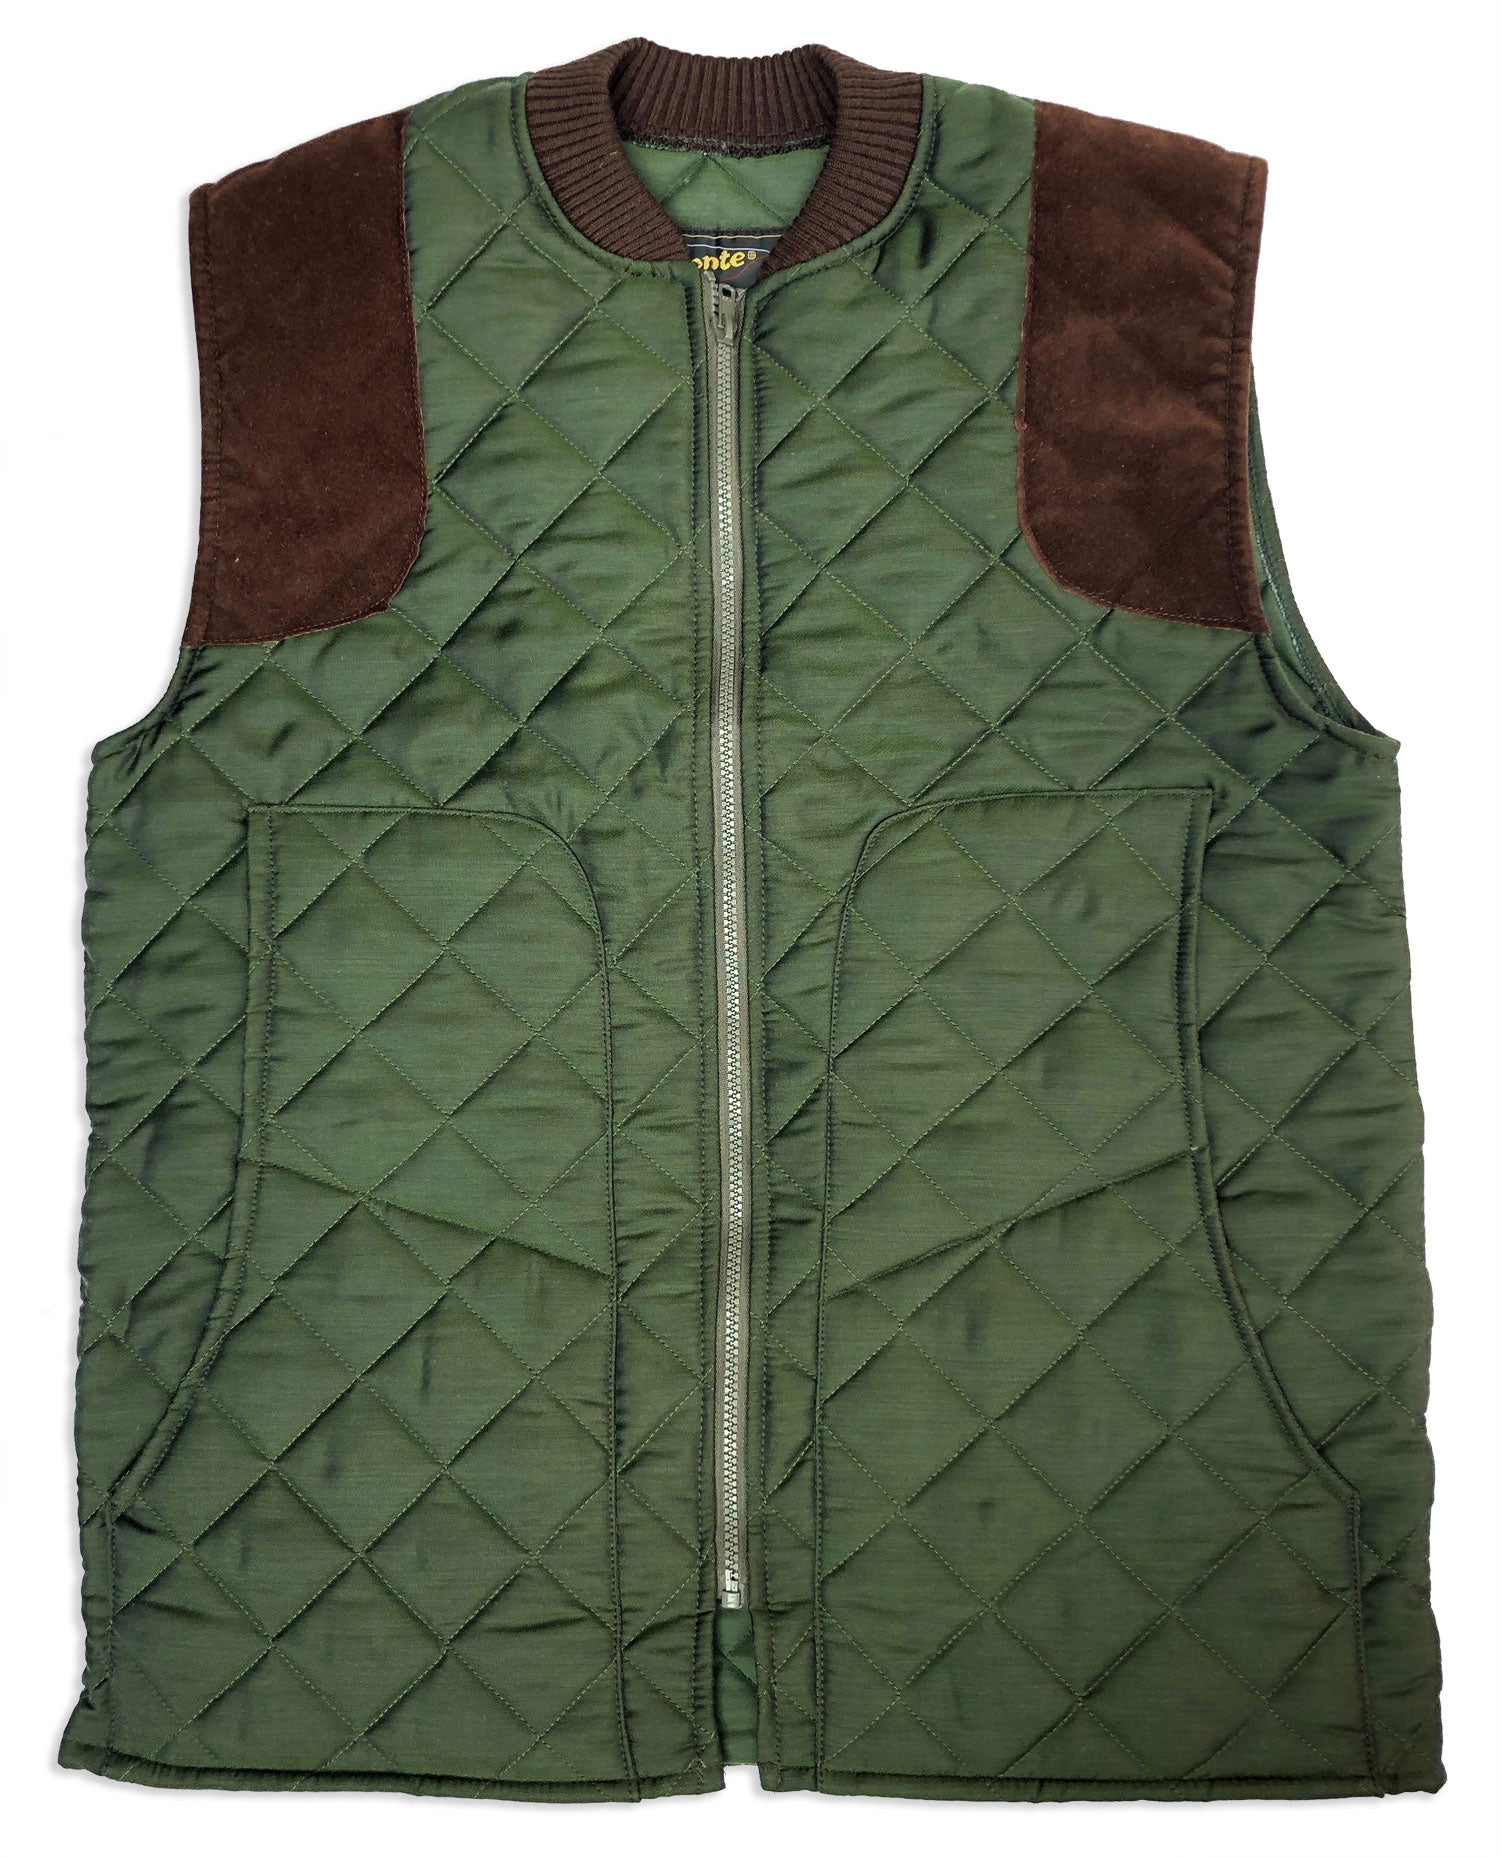 Bronte Quilted Shooting Waistcoat in green with shoulder protectors